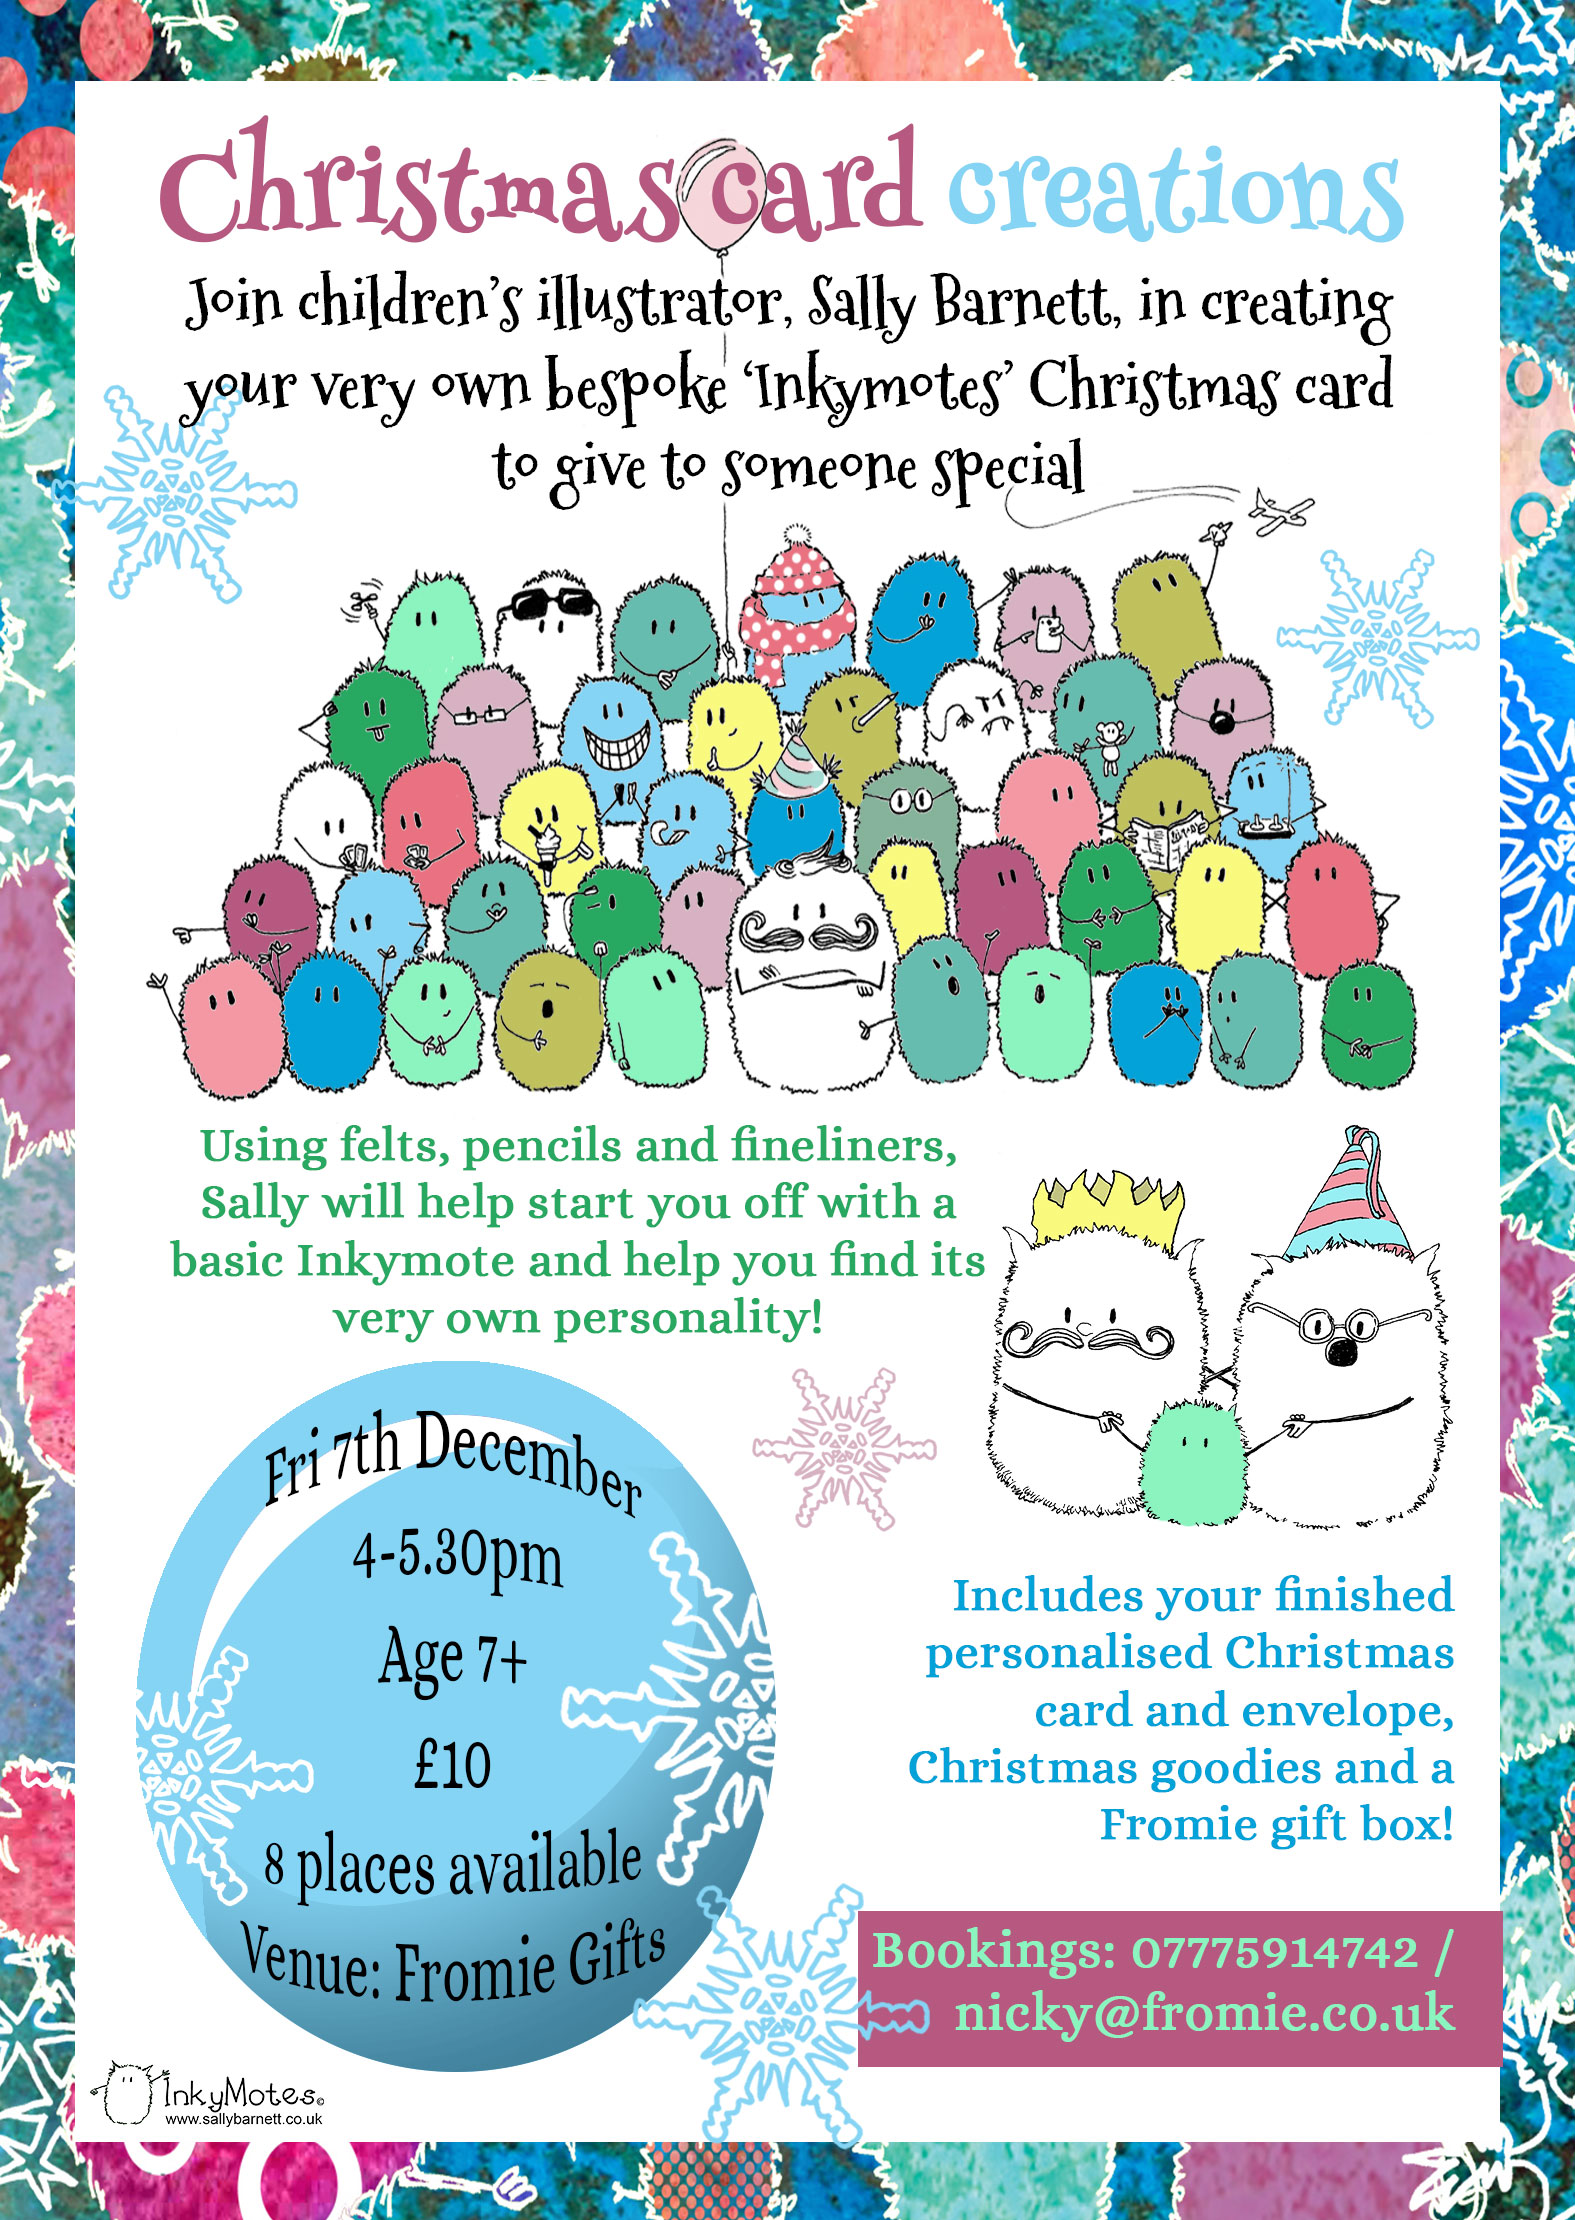 sally barnett illustration designer frome bath bristol illustration of inkymotes for illustration workshop at fromie gifts in frome